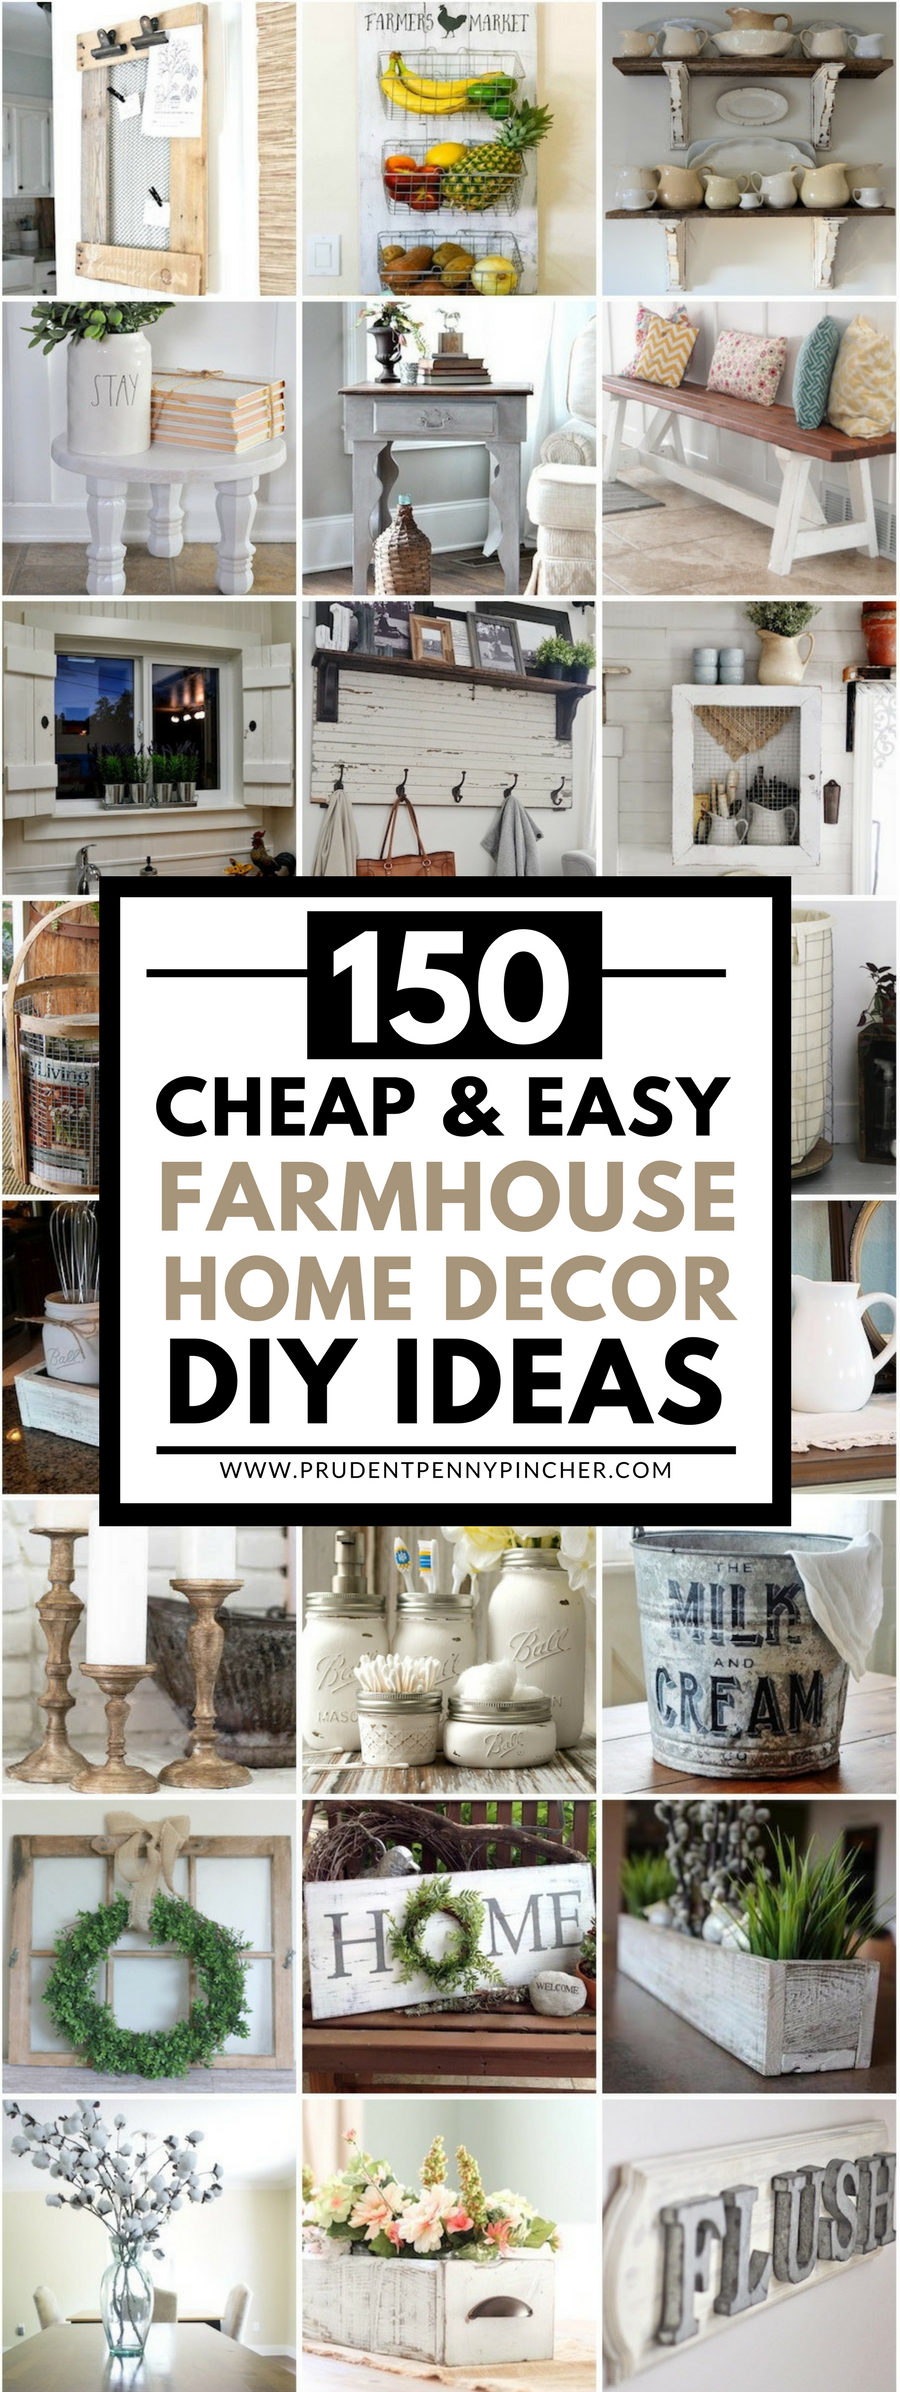 Save Money With These Farmhouse Style Home Decor Ideas! From Furniture To  Home Accents And Organization Ideas, There Are Over A Hundred Projects To  Choose ...